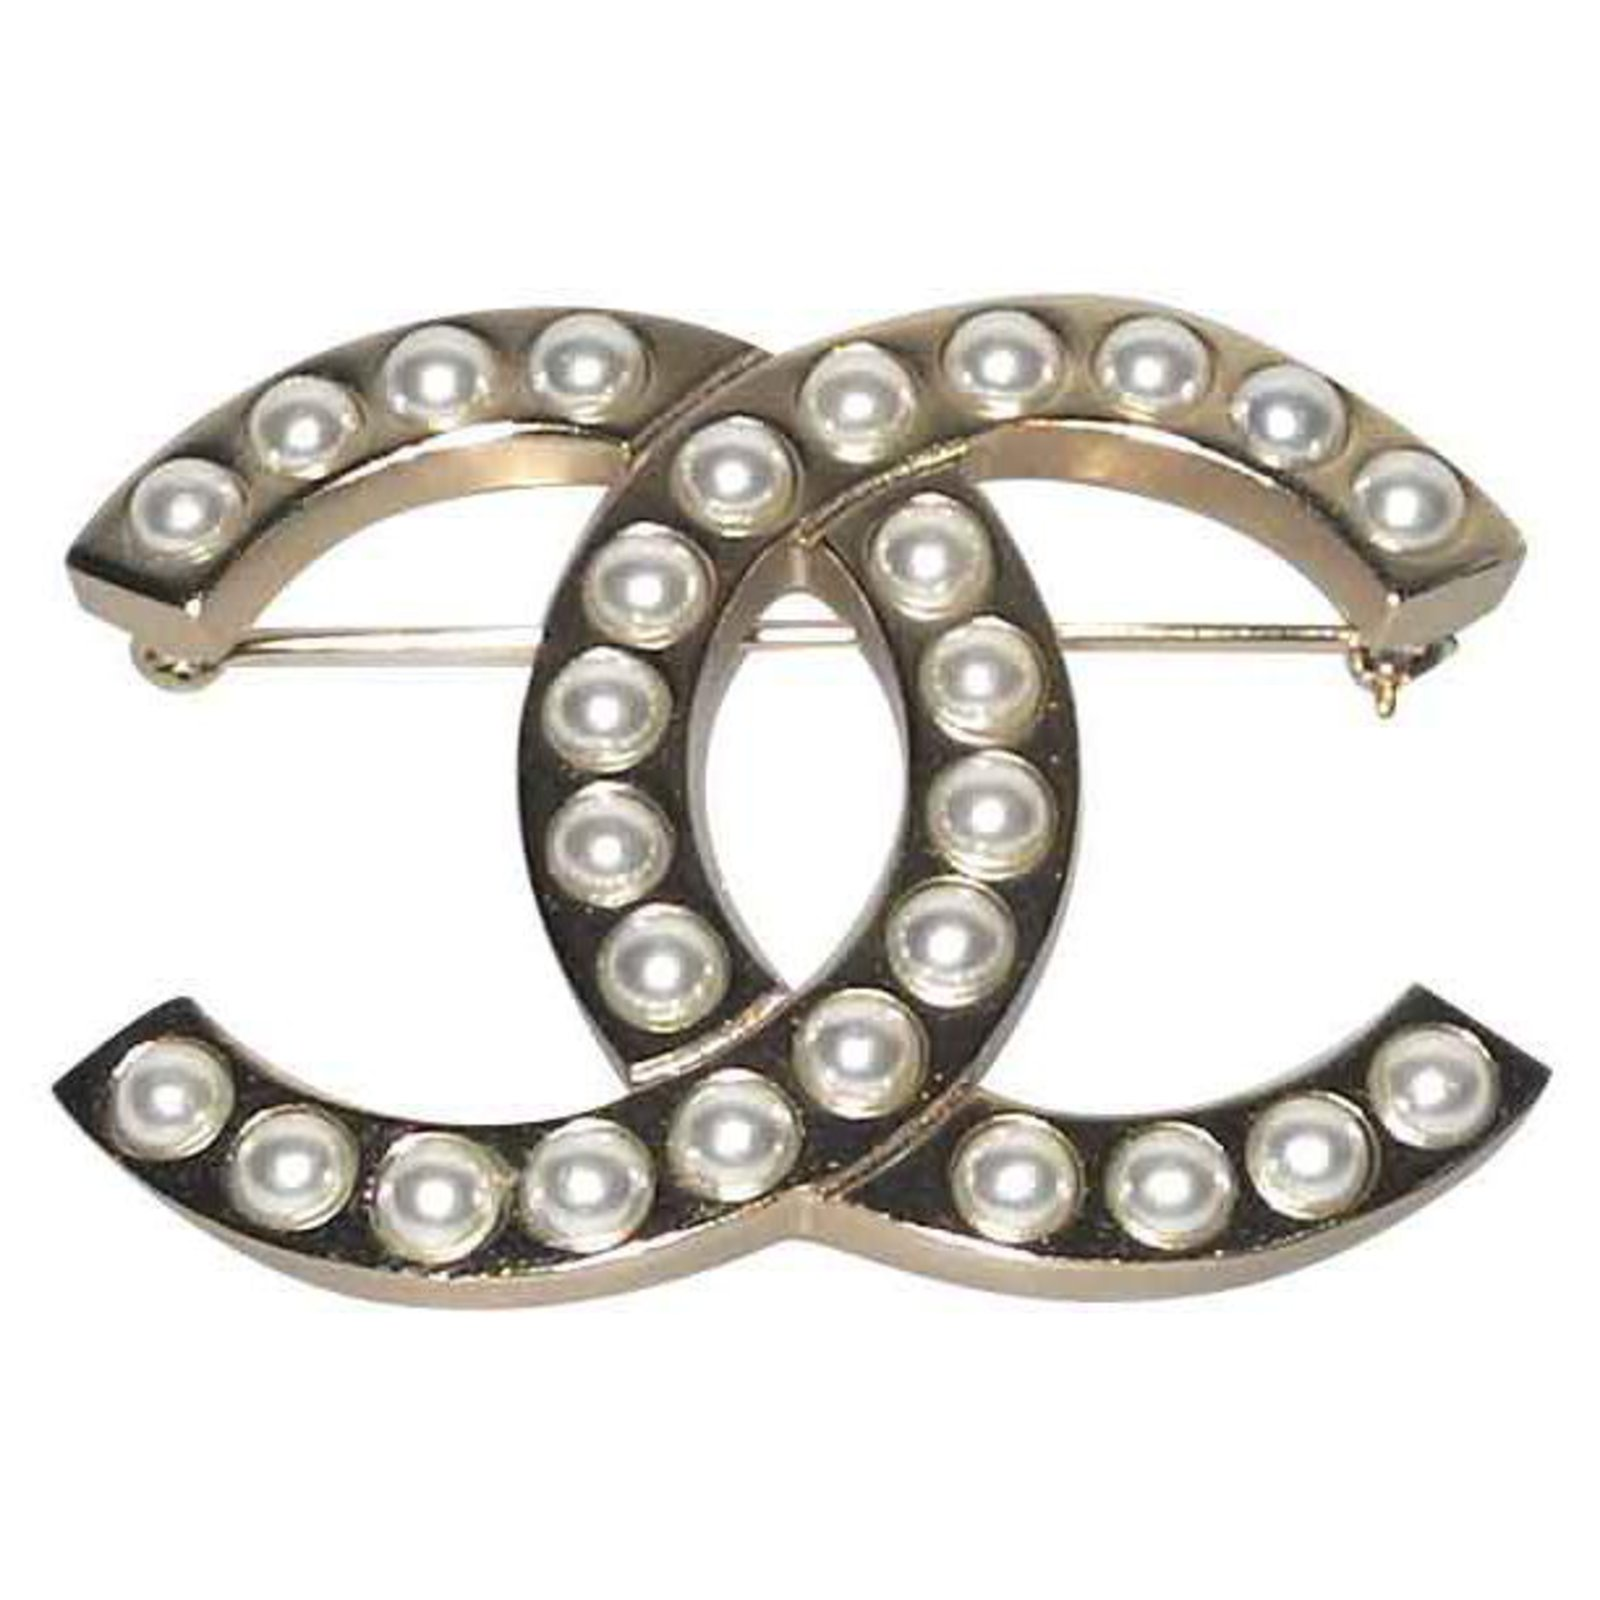 Chanel brooch gold metal and pearls, Collection 2018 superb